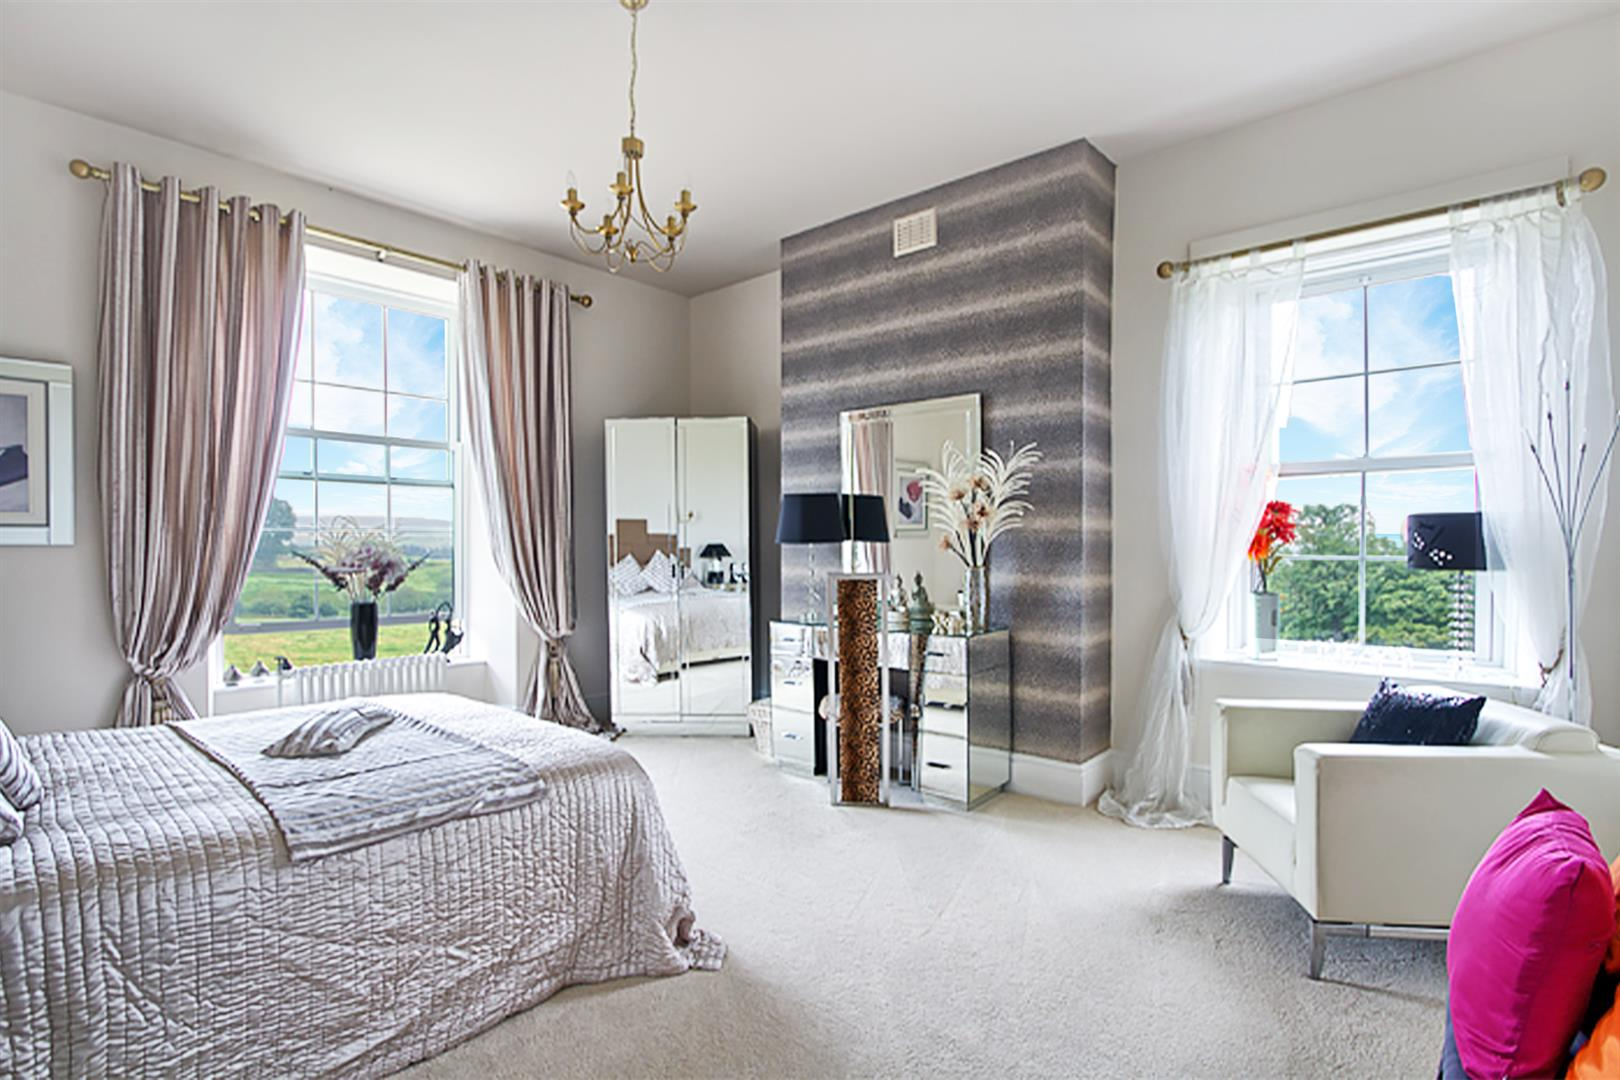 4 bedroom house For Sale in Bolton - bed 4.png.